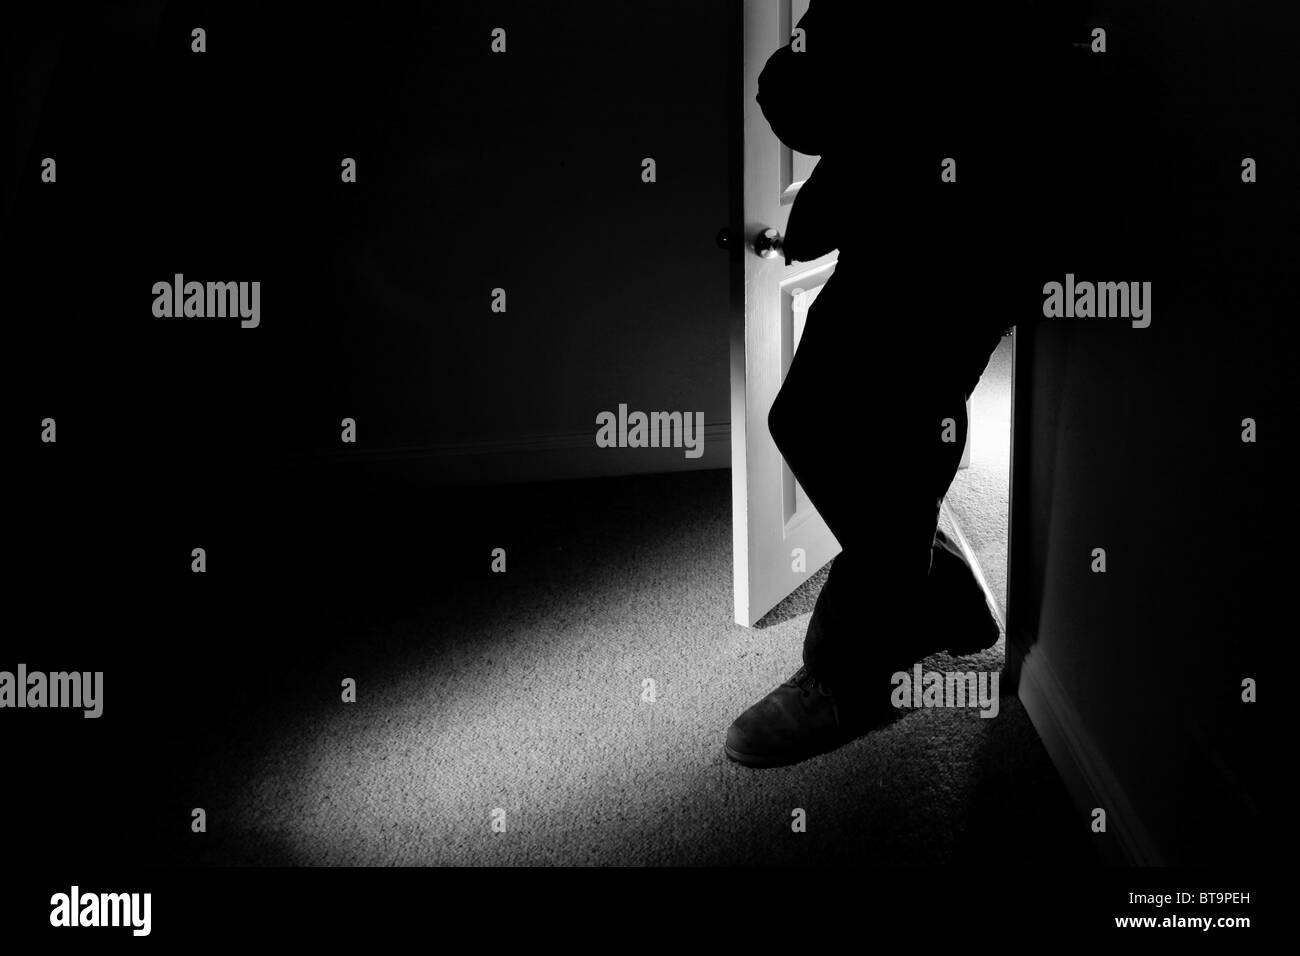 Man leaning on the wall of a dark room - Stock Image